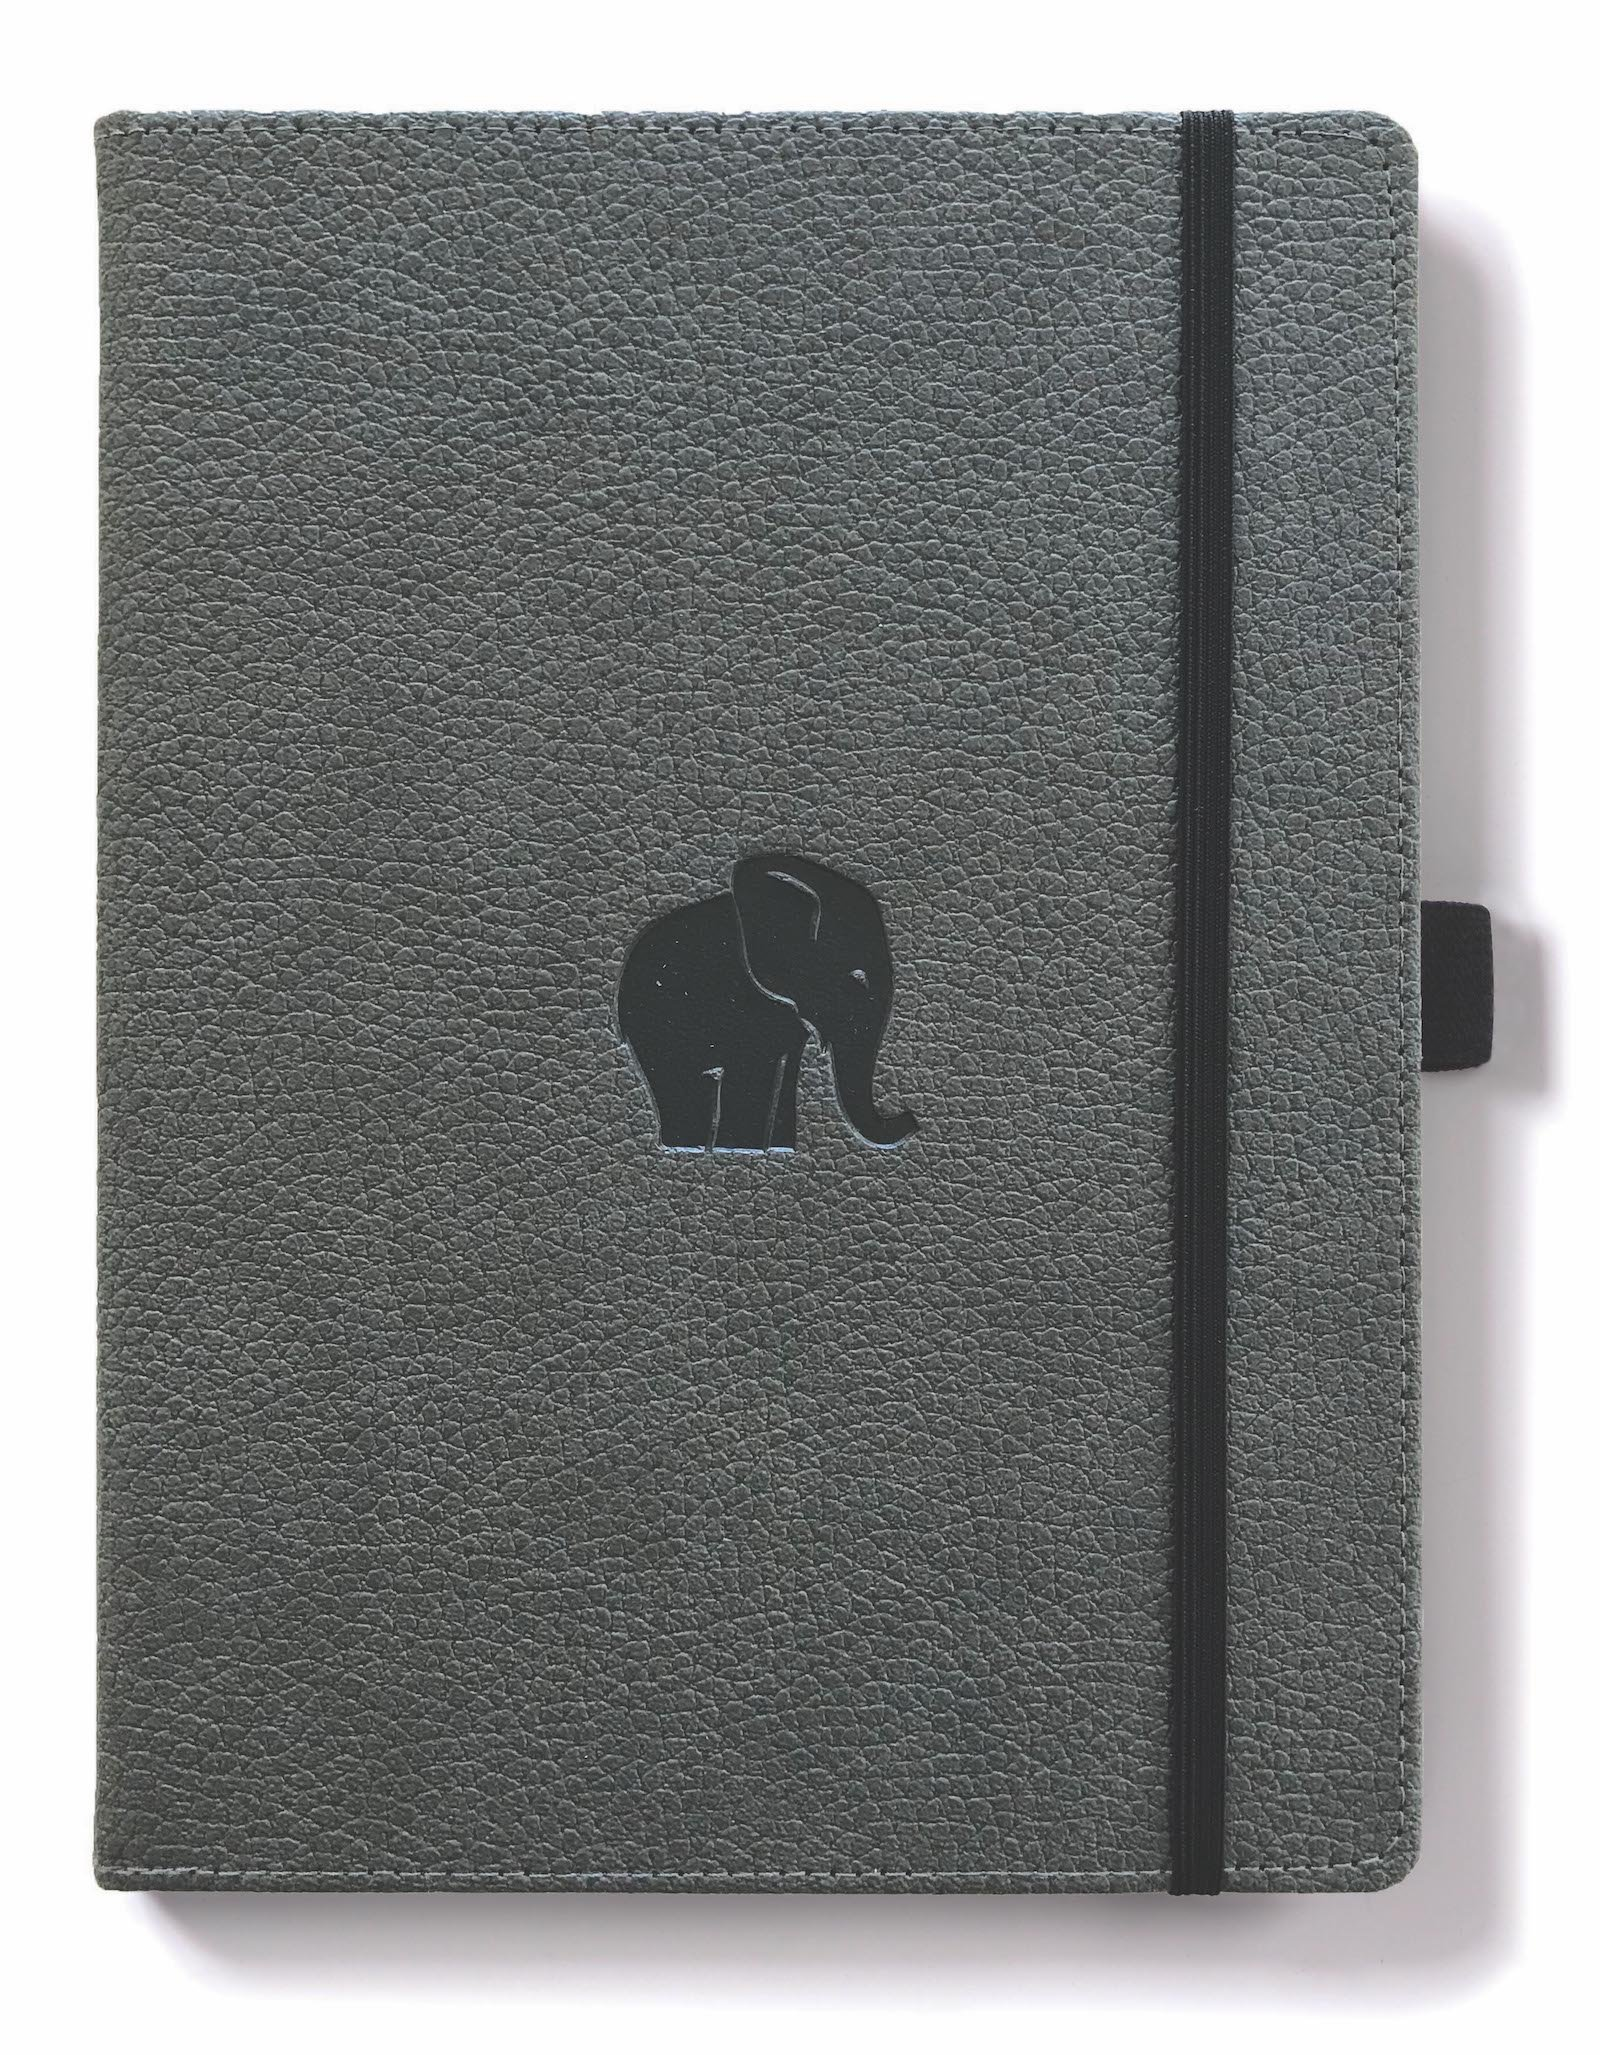 Dingbats Wildlife Dotted Hardcover Notebook - PU Leather, Perforated 100gsm Ink-Proof Paper, Pocket, Elastic Closure, Pen Holder, Bookmark (Grey Elephant, XL A4+ (8.5 x 11.8)) by Dingbats* Notebooks